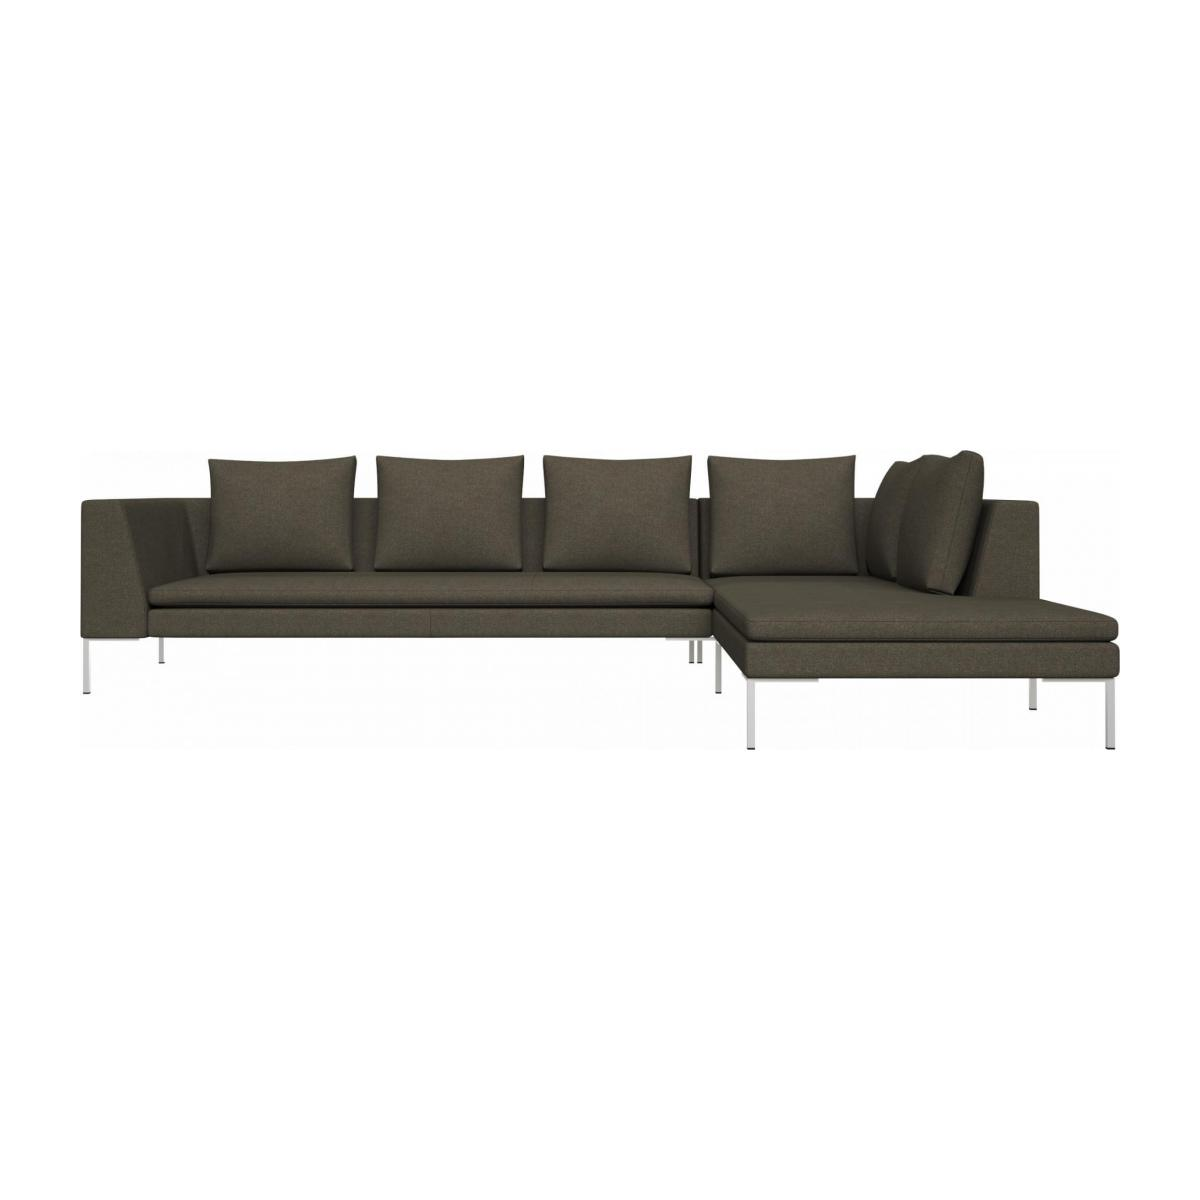 3 seater sofa with chaise longue on the right in Lecce fabric, slade grey  n°1